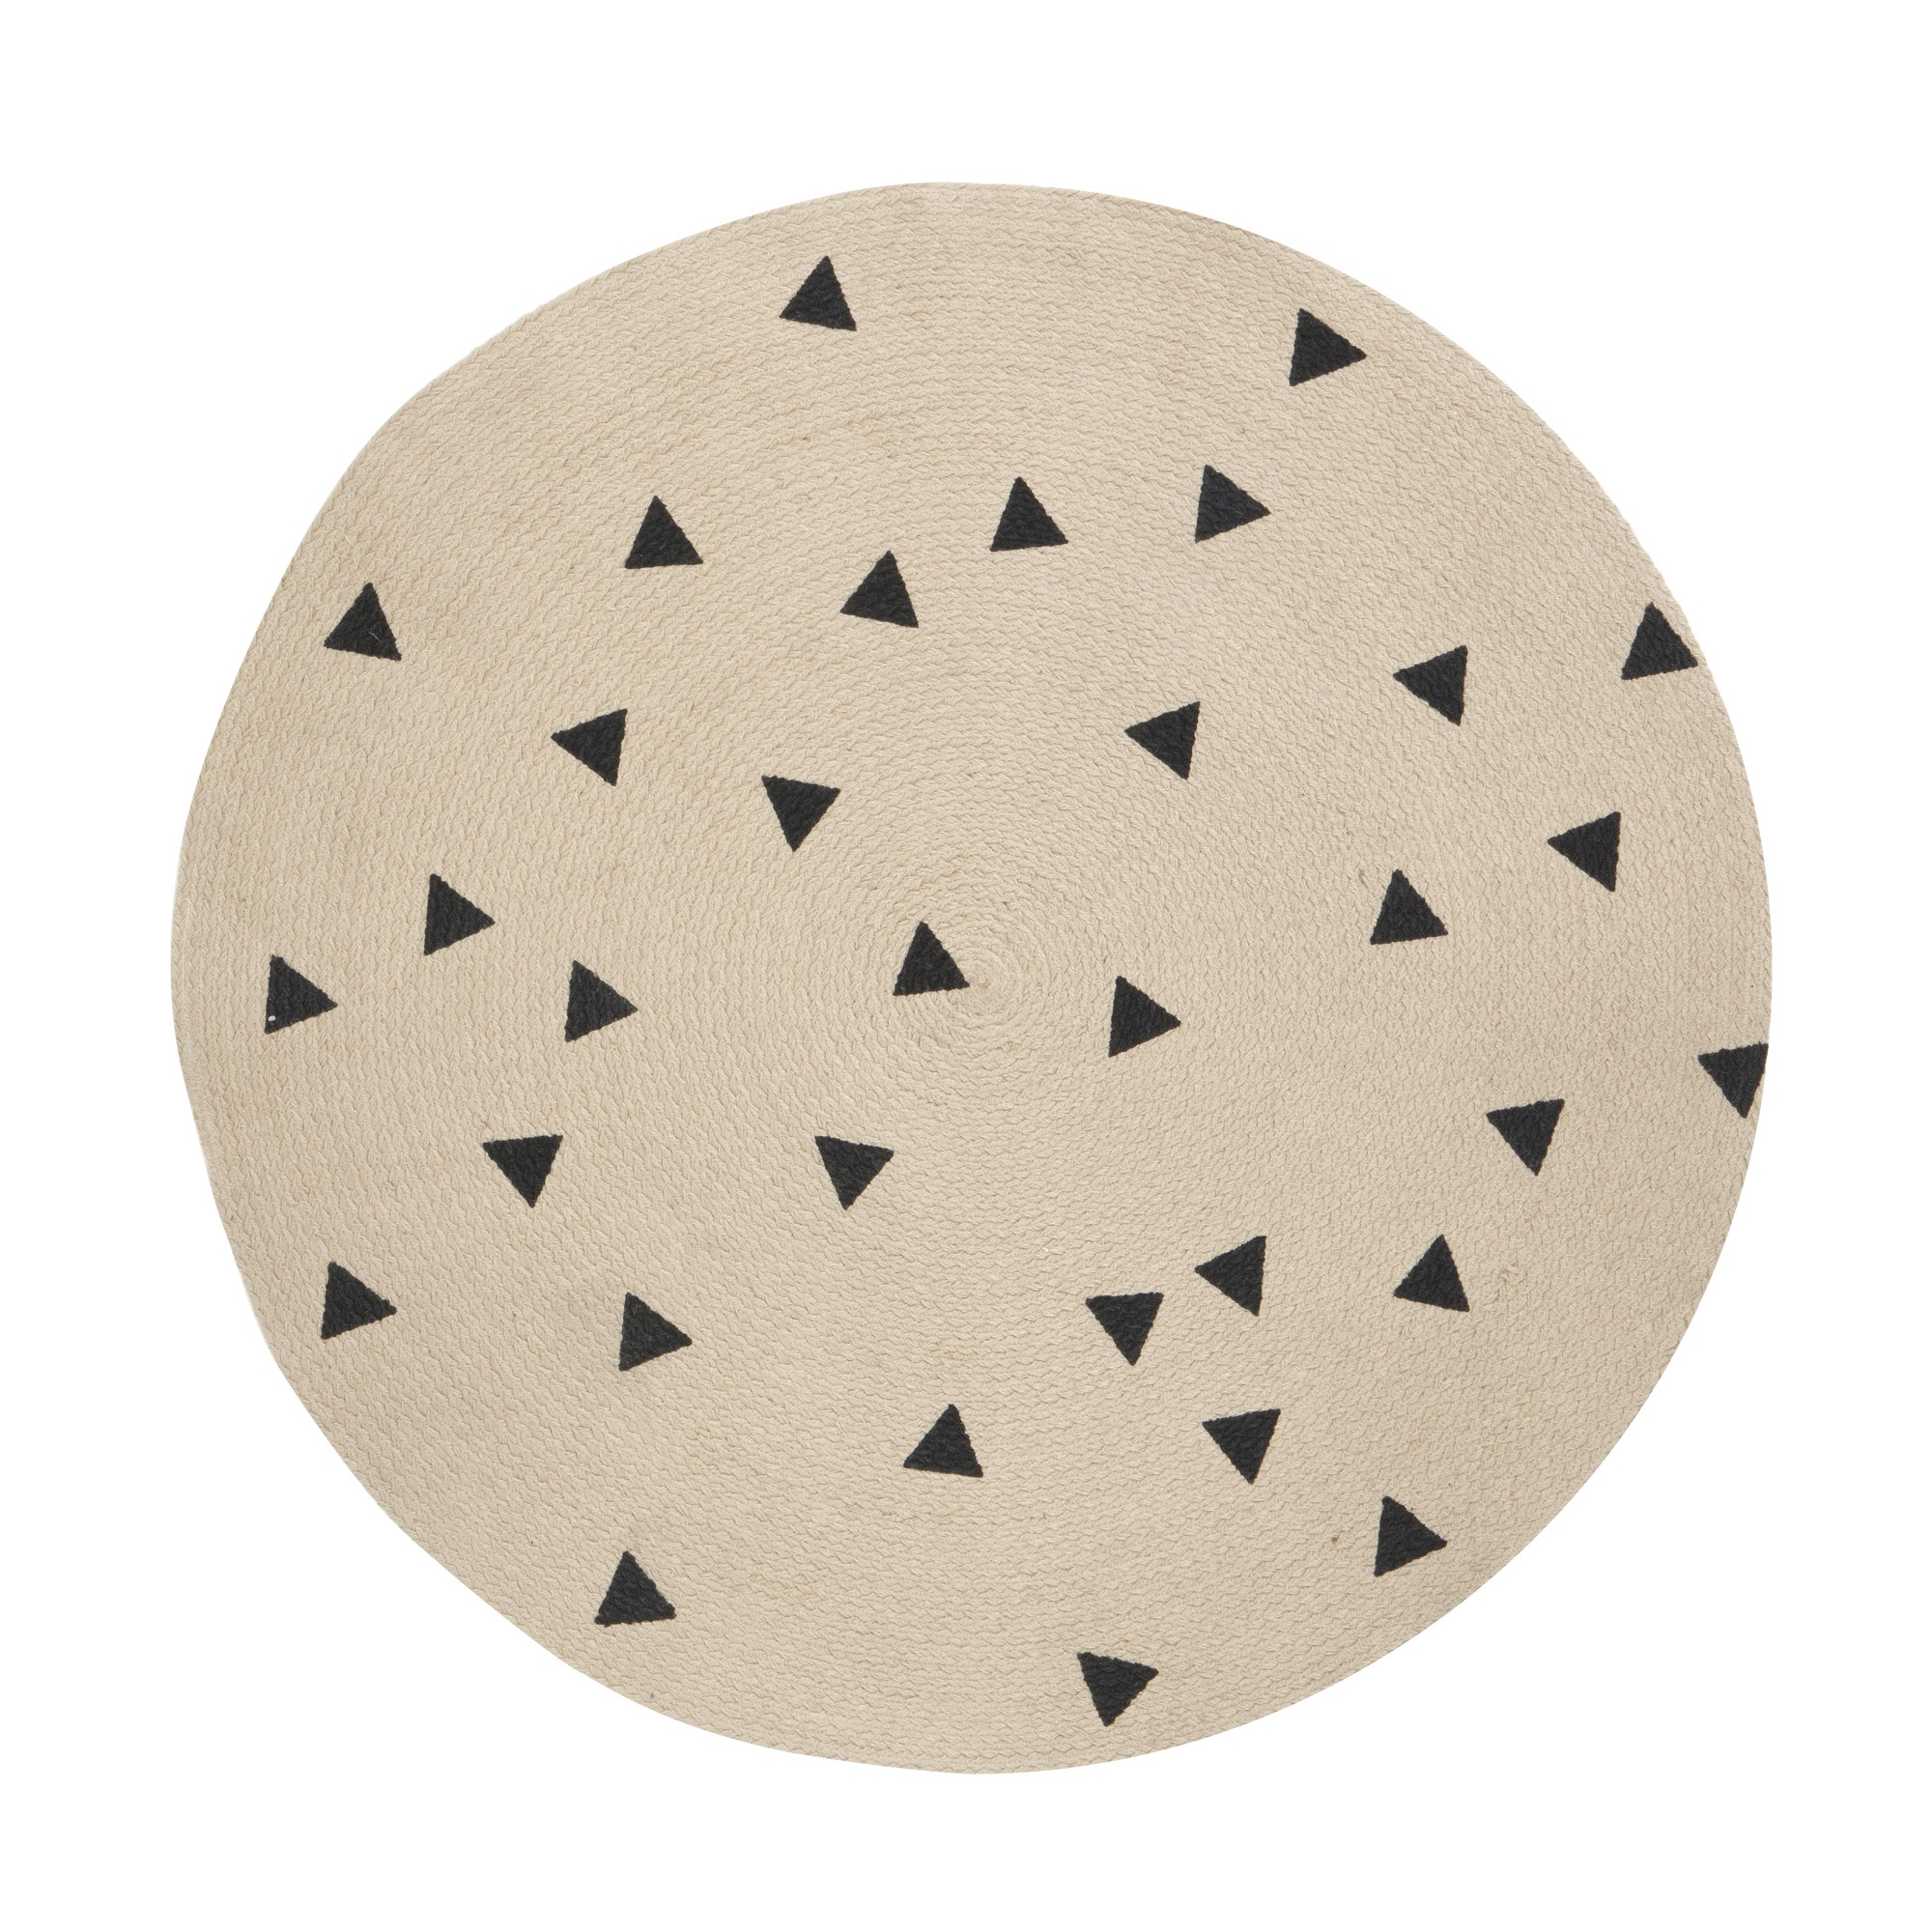 Tapis rond   triangles noir 100% coton organique Ferm living